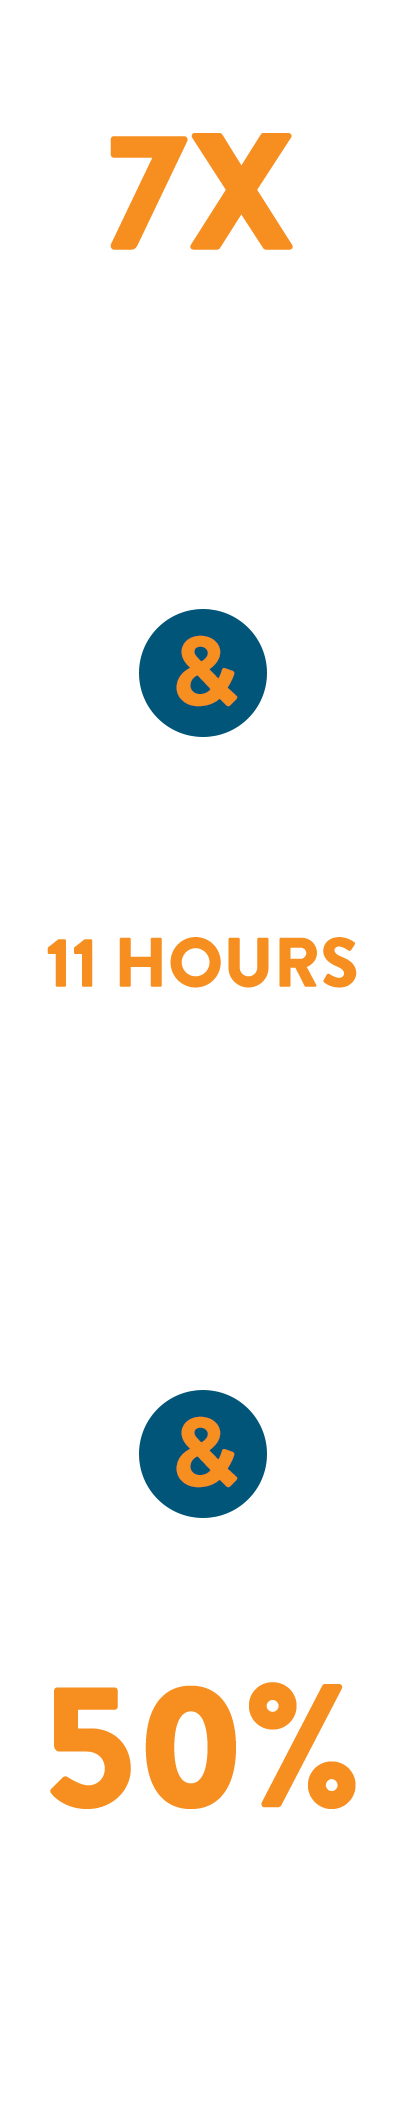 HAS A 7X INCREASED GENETIC RISK AND CAUSES WOMEN TO LOSE 11 HOURS OF PRODUCTIVITY EACH WEEK AND IS THE CAUSE OF 50% OF UNEXPLAINED INFERTILITY